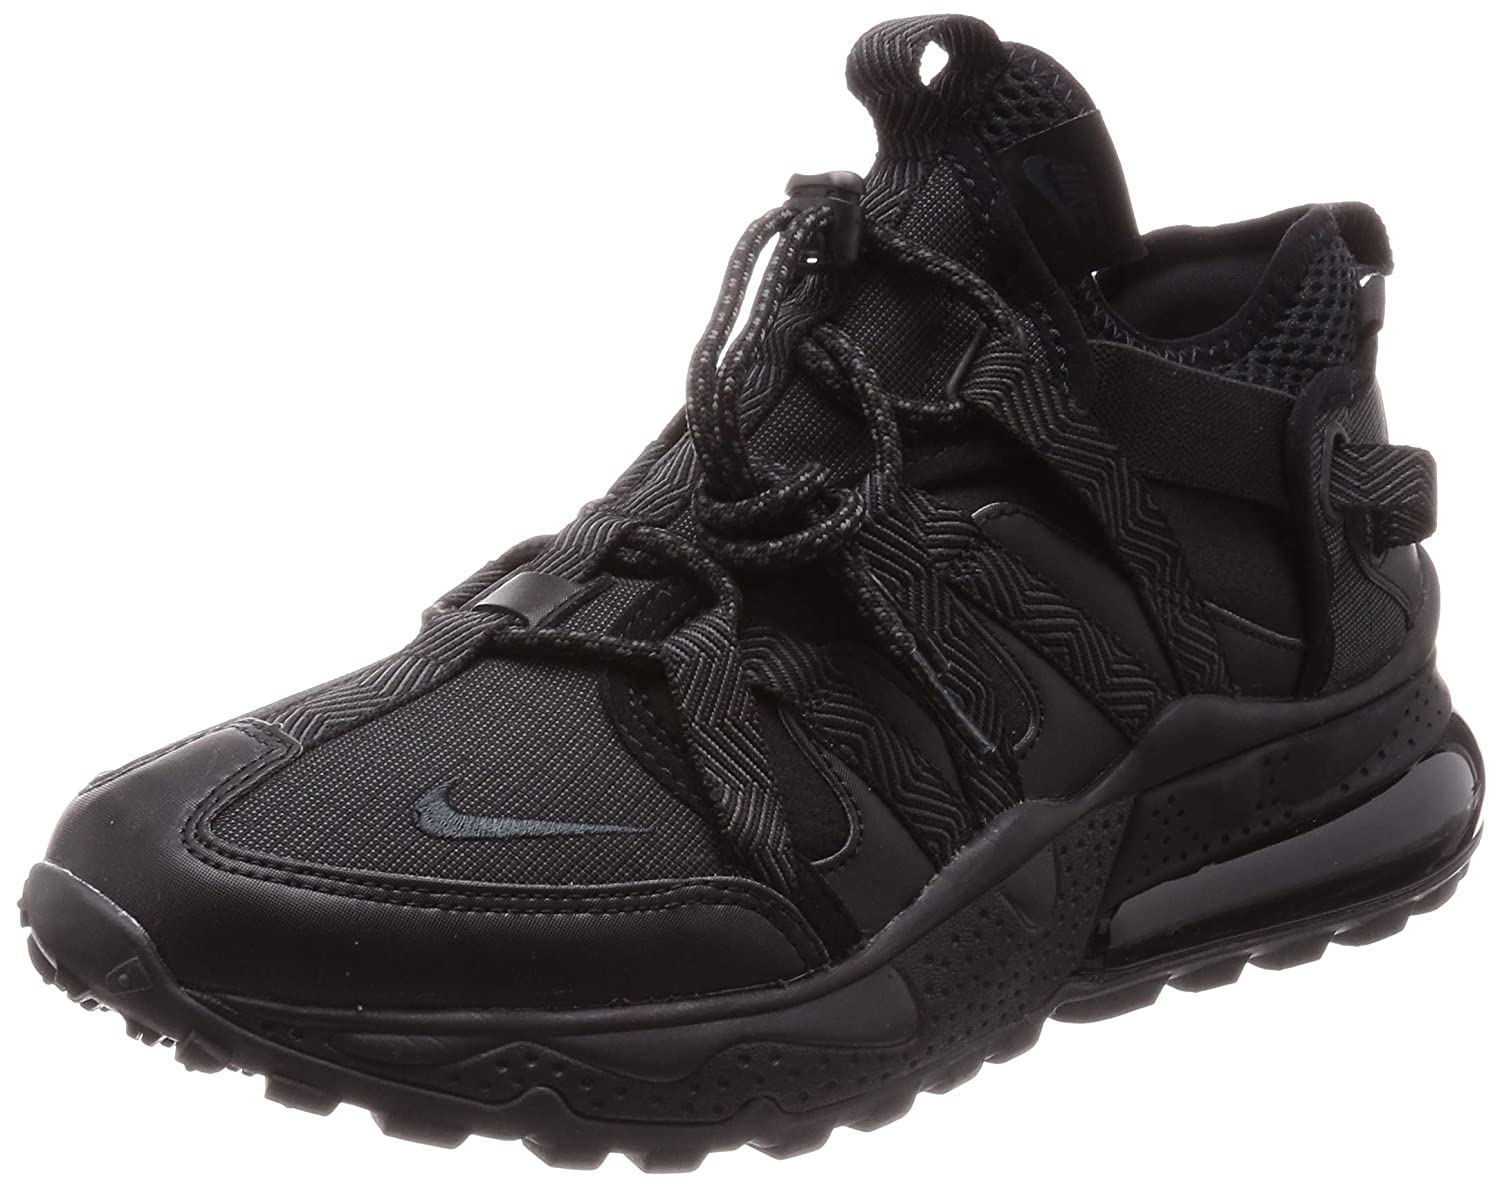 70f9cce643c1d4 Amazon.com | Nike Mens Air Max 270 Bowfin Black/Anthracite Synthetic | Shoes